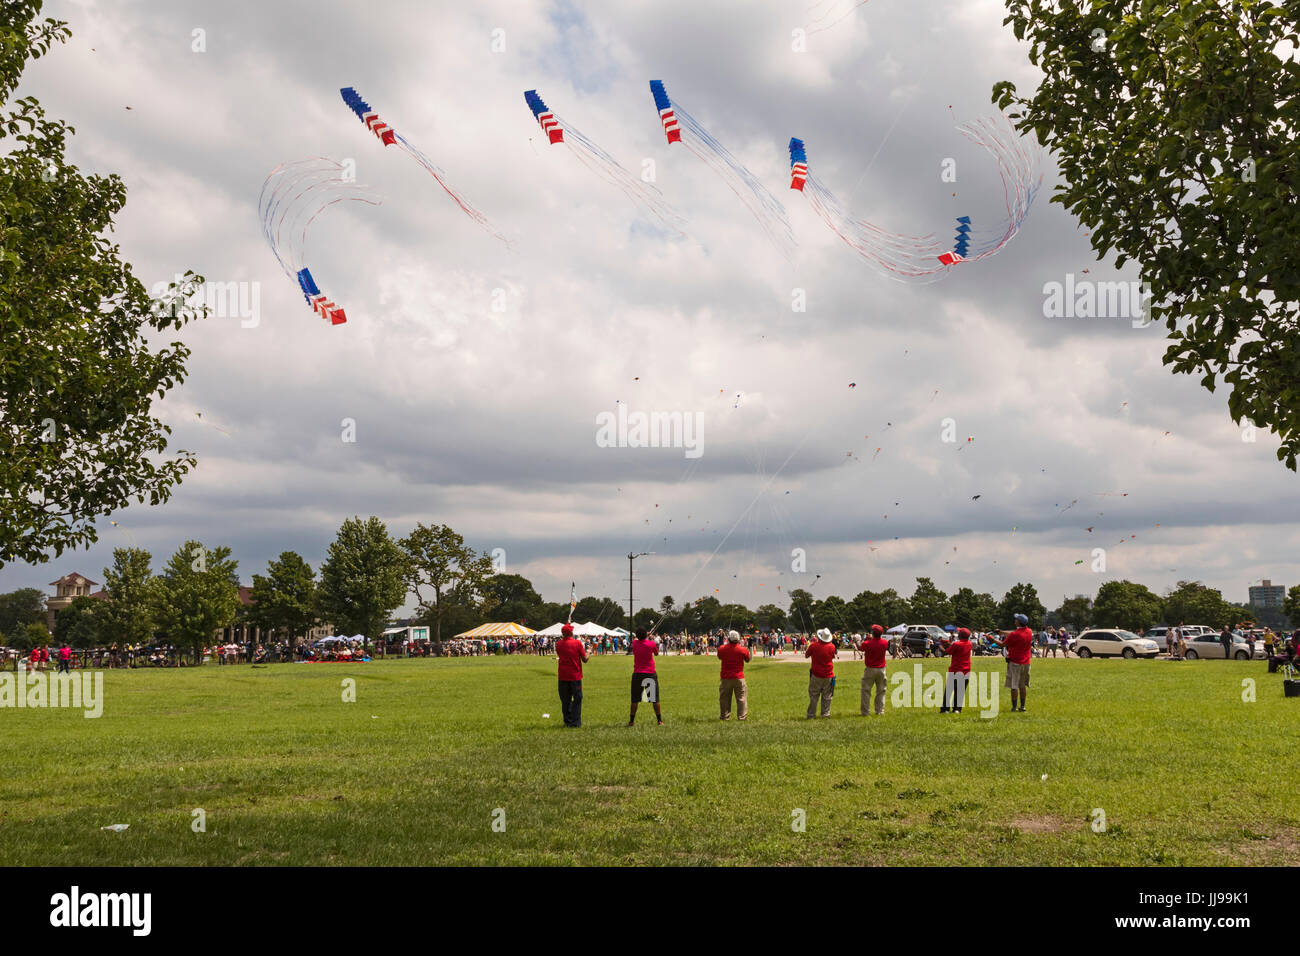 Detroit, Michigan - The Windjammers Kite Team performs at the Detroit Kite Festival, held on Belle Isle. Each member - Stock Image